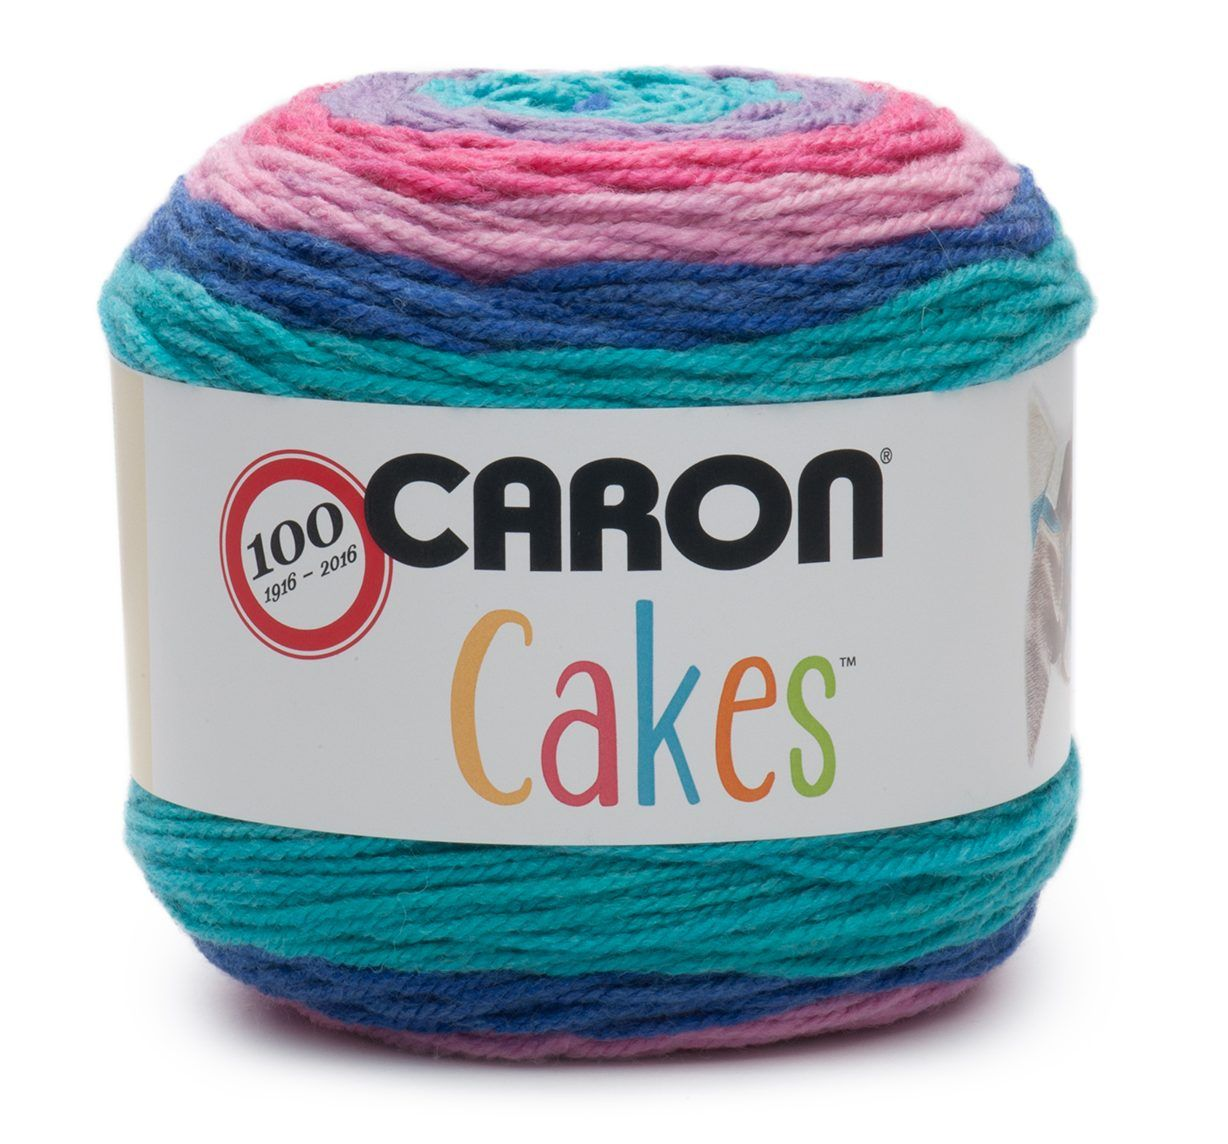 Free Crochet Patterns Featuring Caron Cakes Yarn | Strick, Tipps und ...